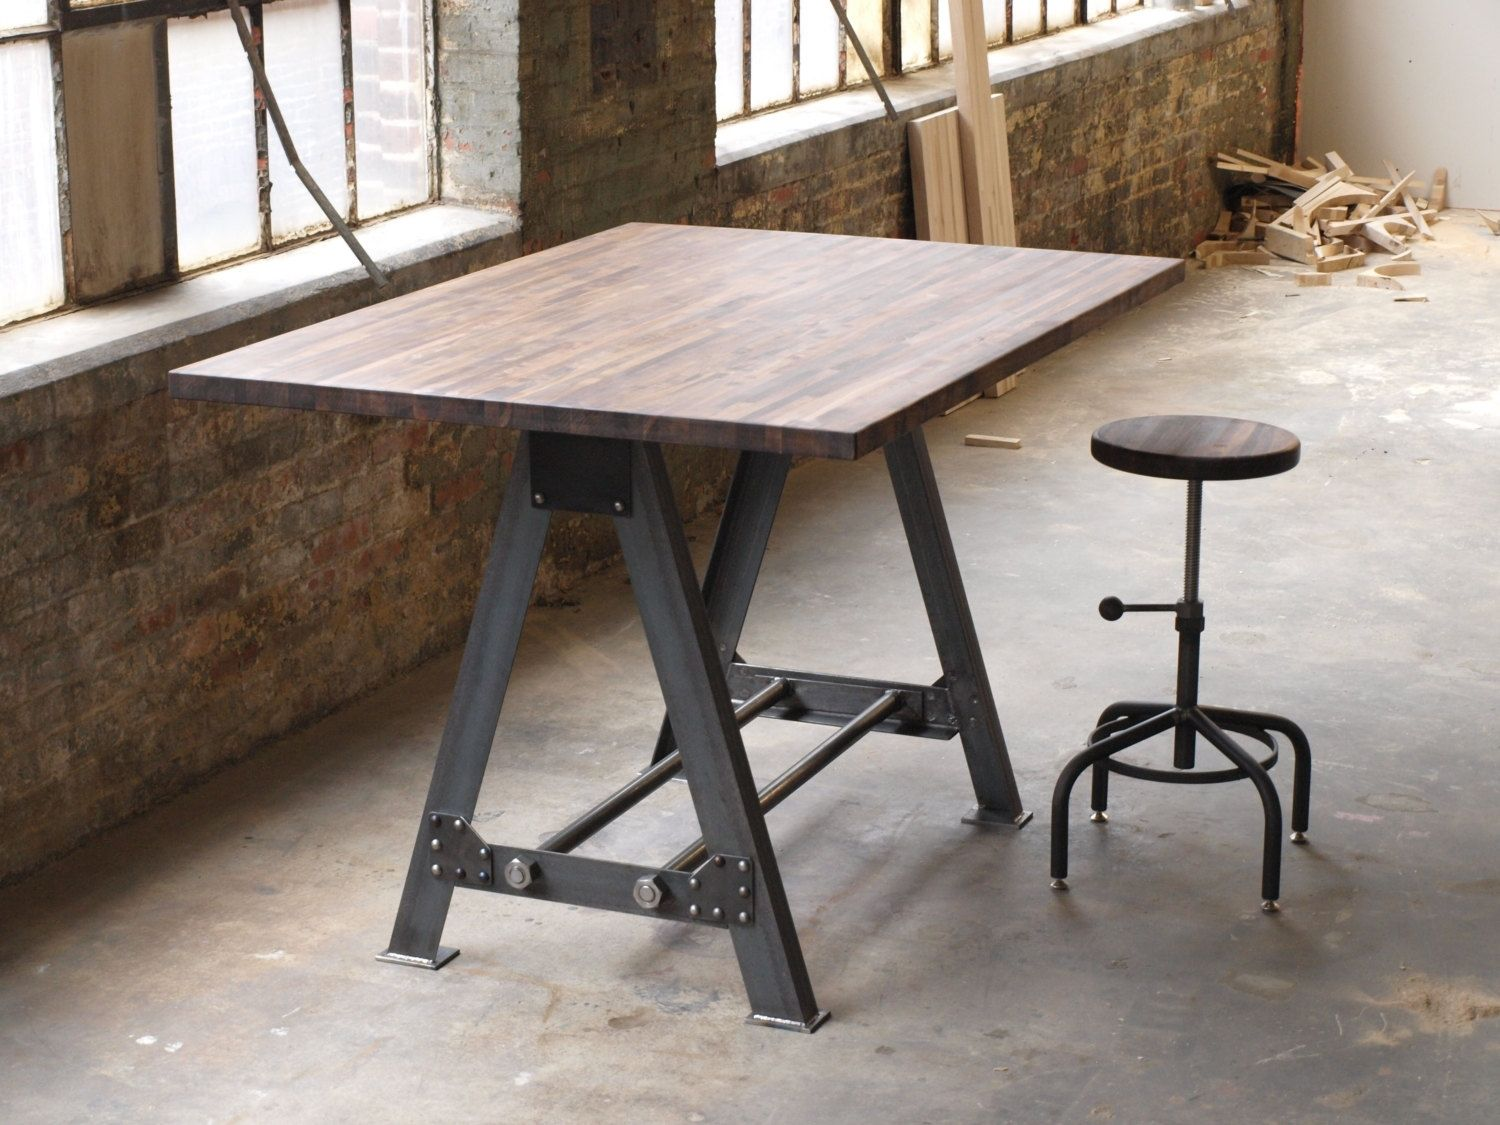 Hand made industrial a frame table kitchen island bar by camposironworks - Industrial kitchen tables ...